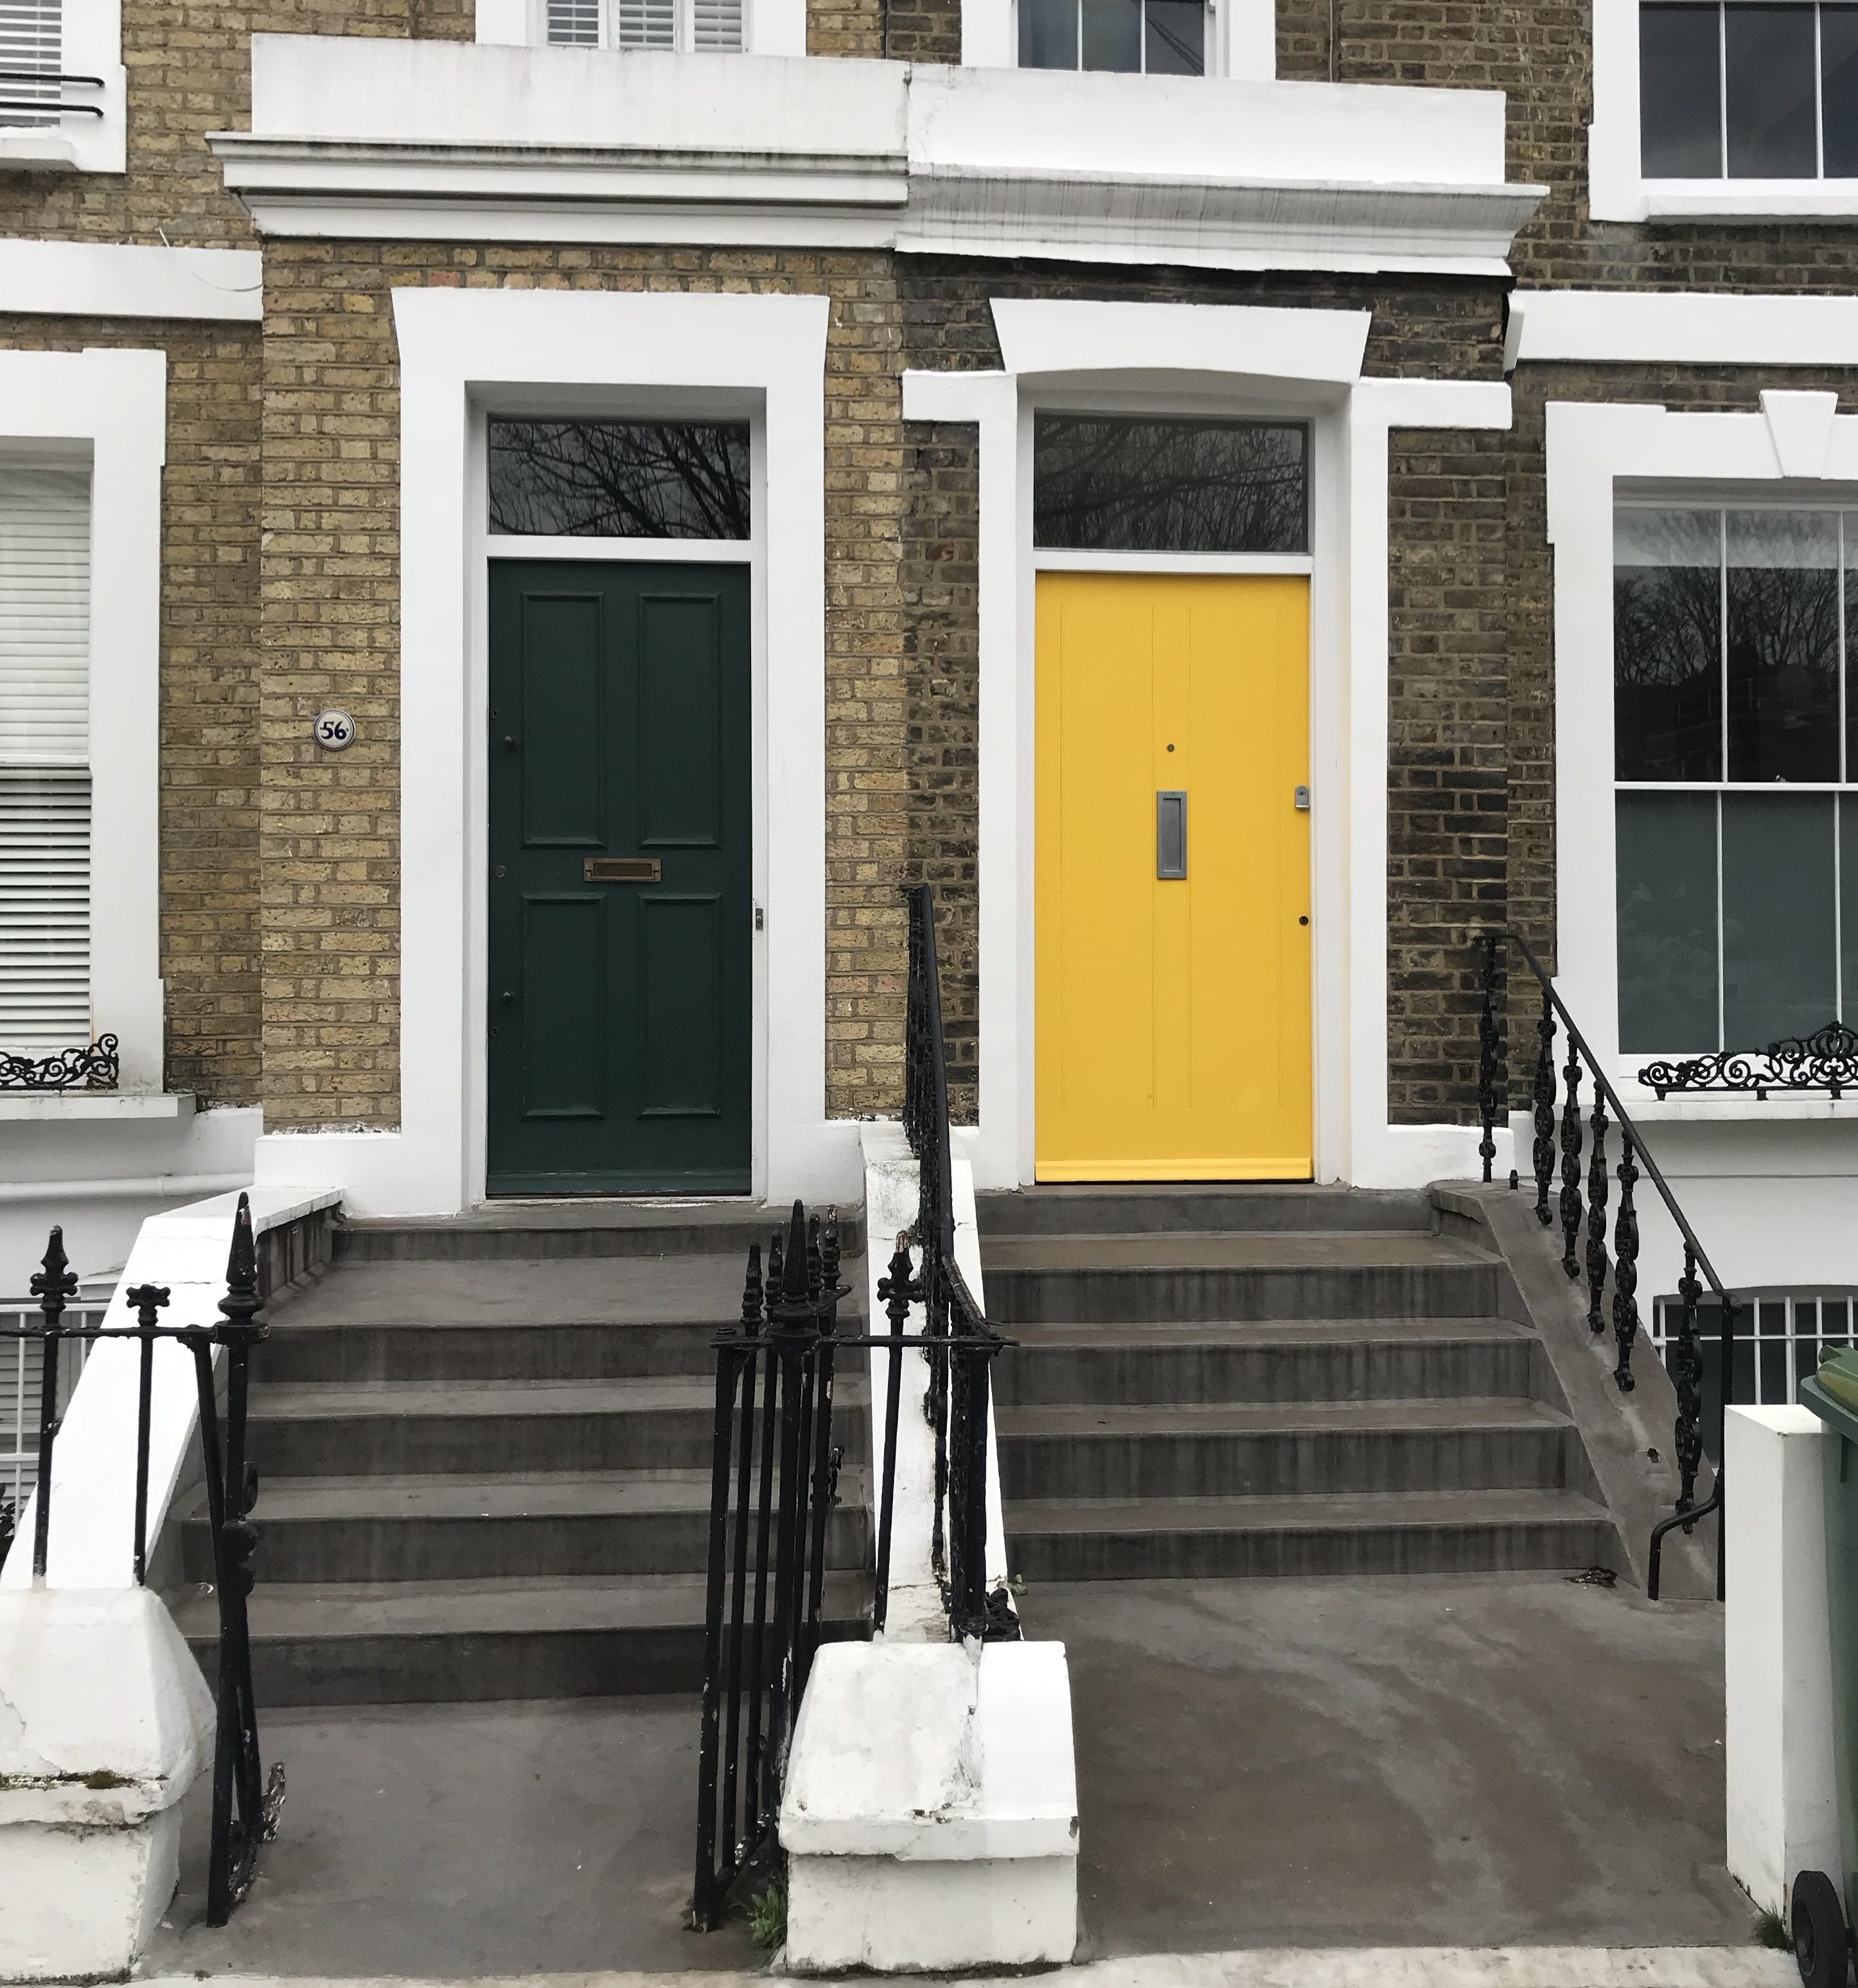 Two townhouses in Camden town London, one with a black door one with a yellow